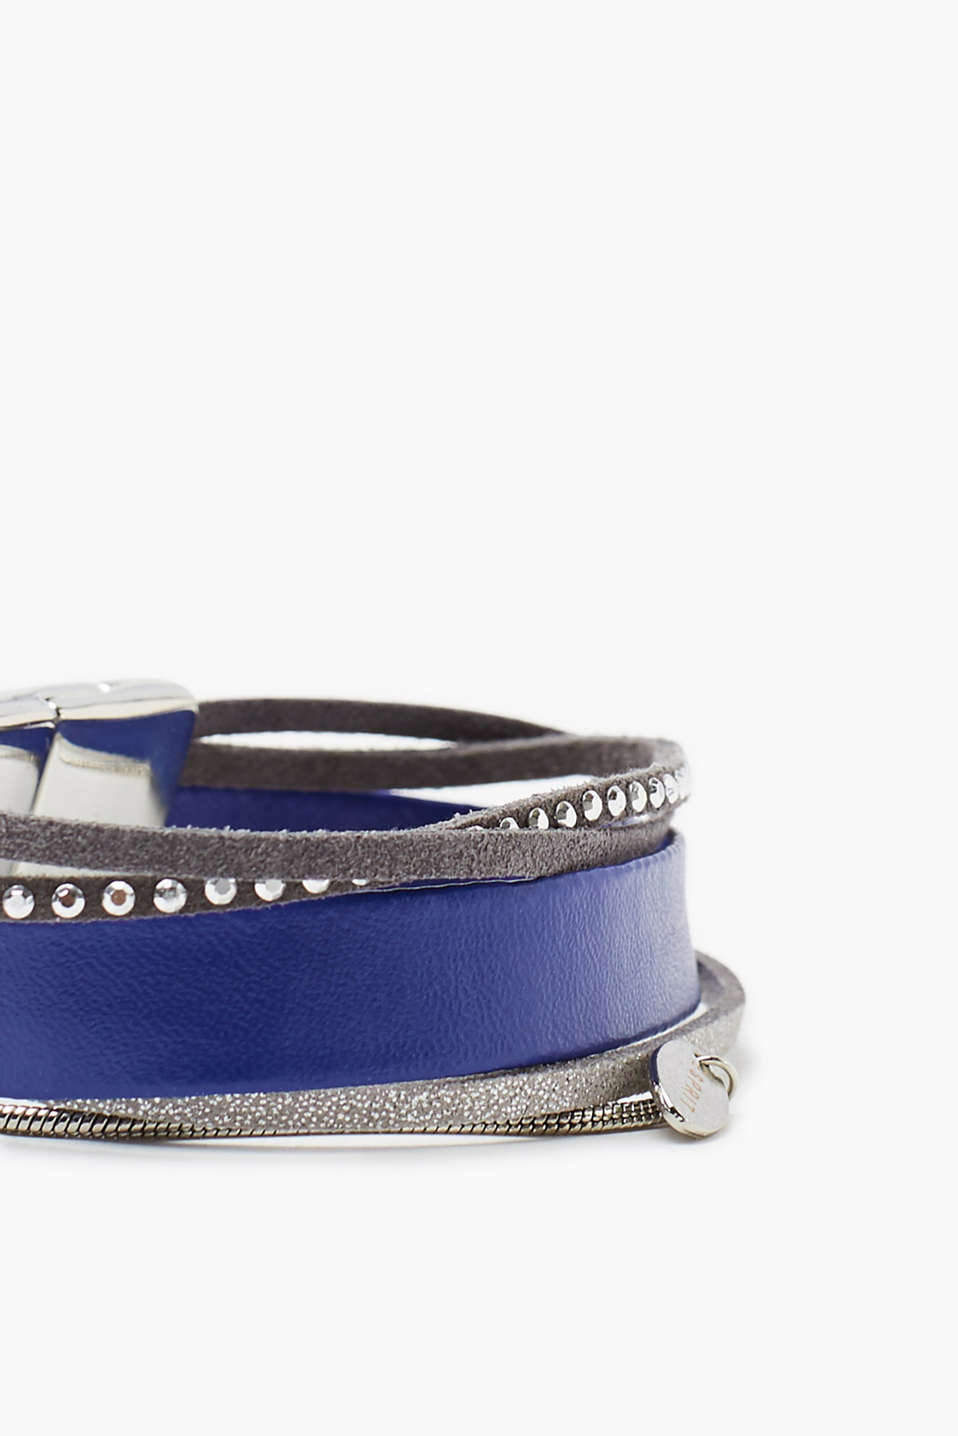 Imitation leather bracelet